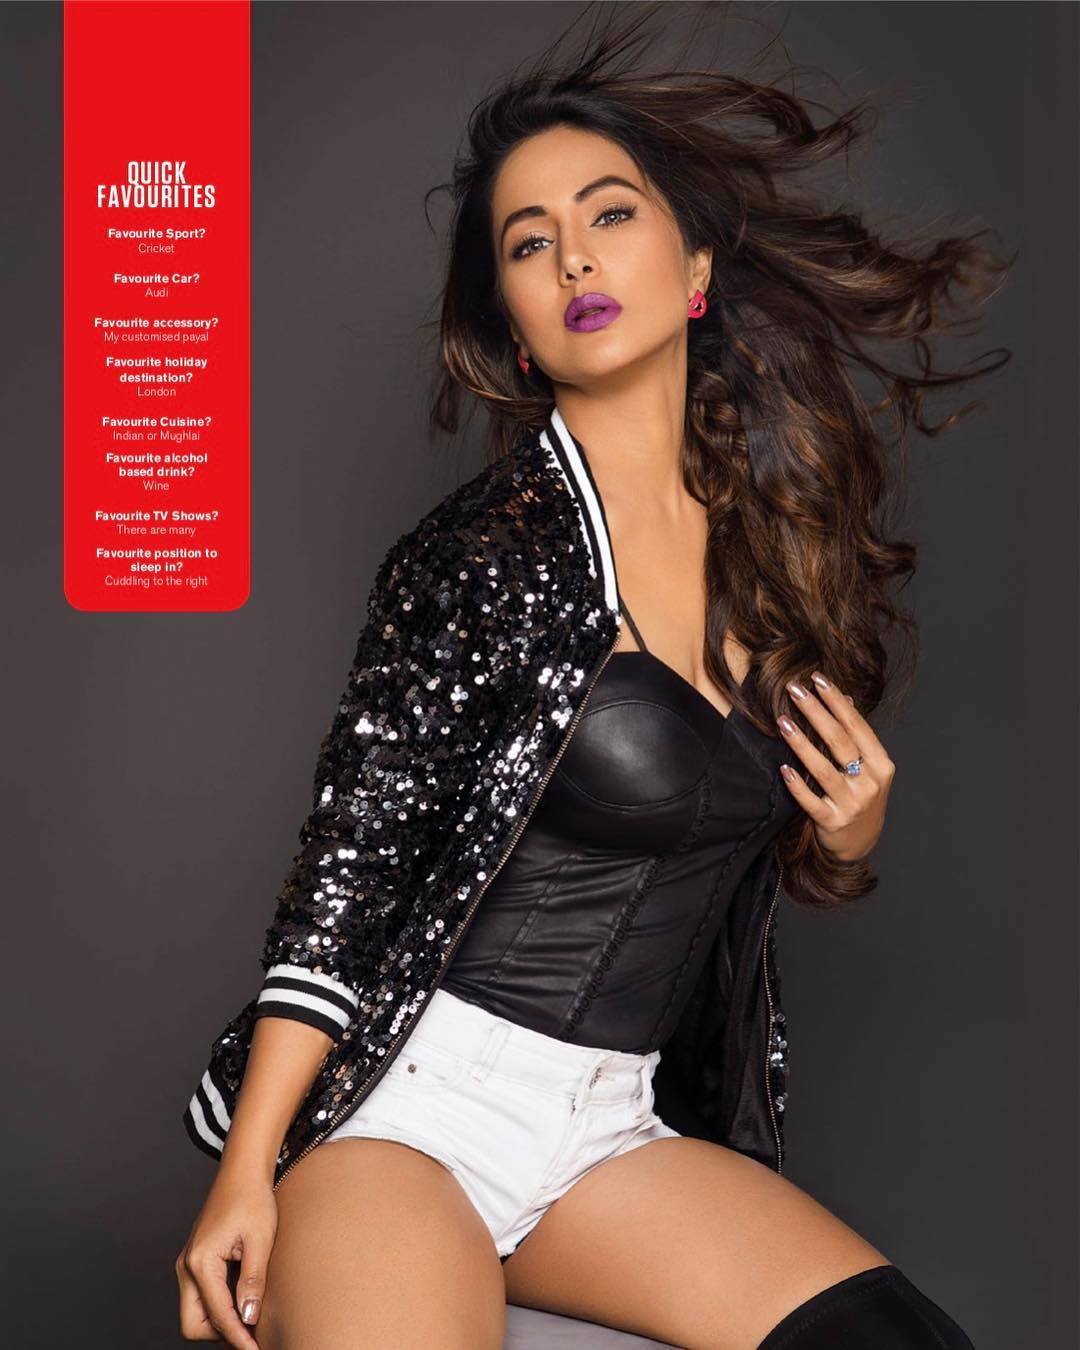 Hina Khan looking stunning in photoshoot for FHM